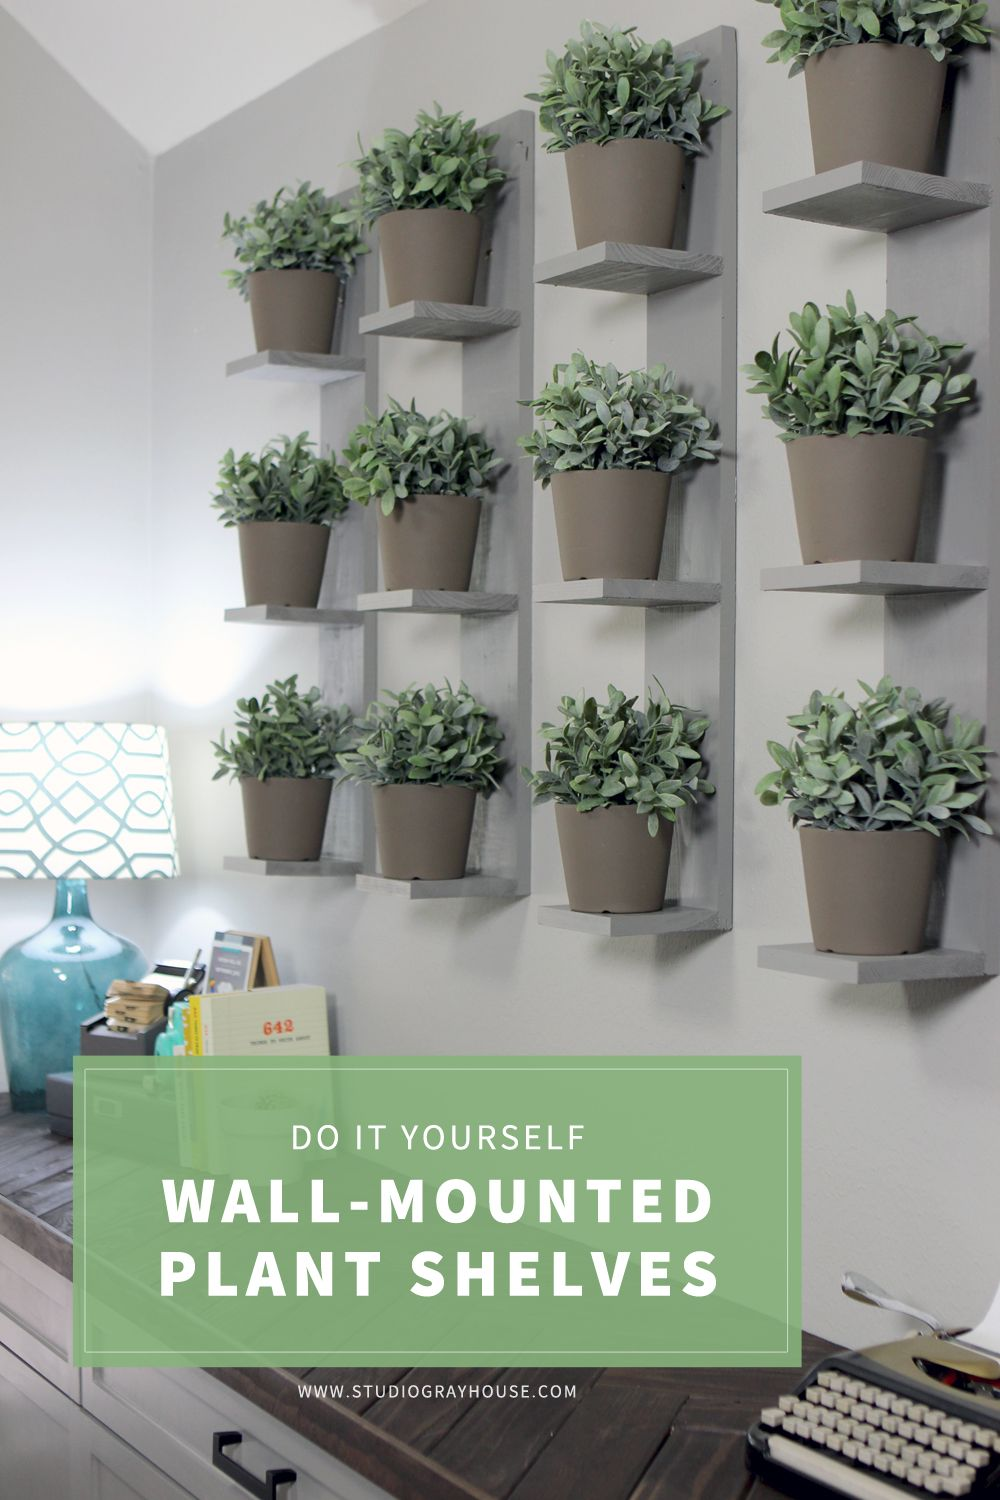 Build these SUPER SIMPLE wall-mounted plant shelves to display real or faux  plants and